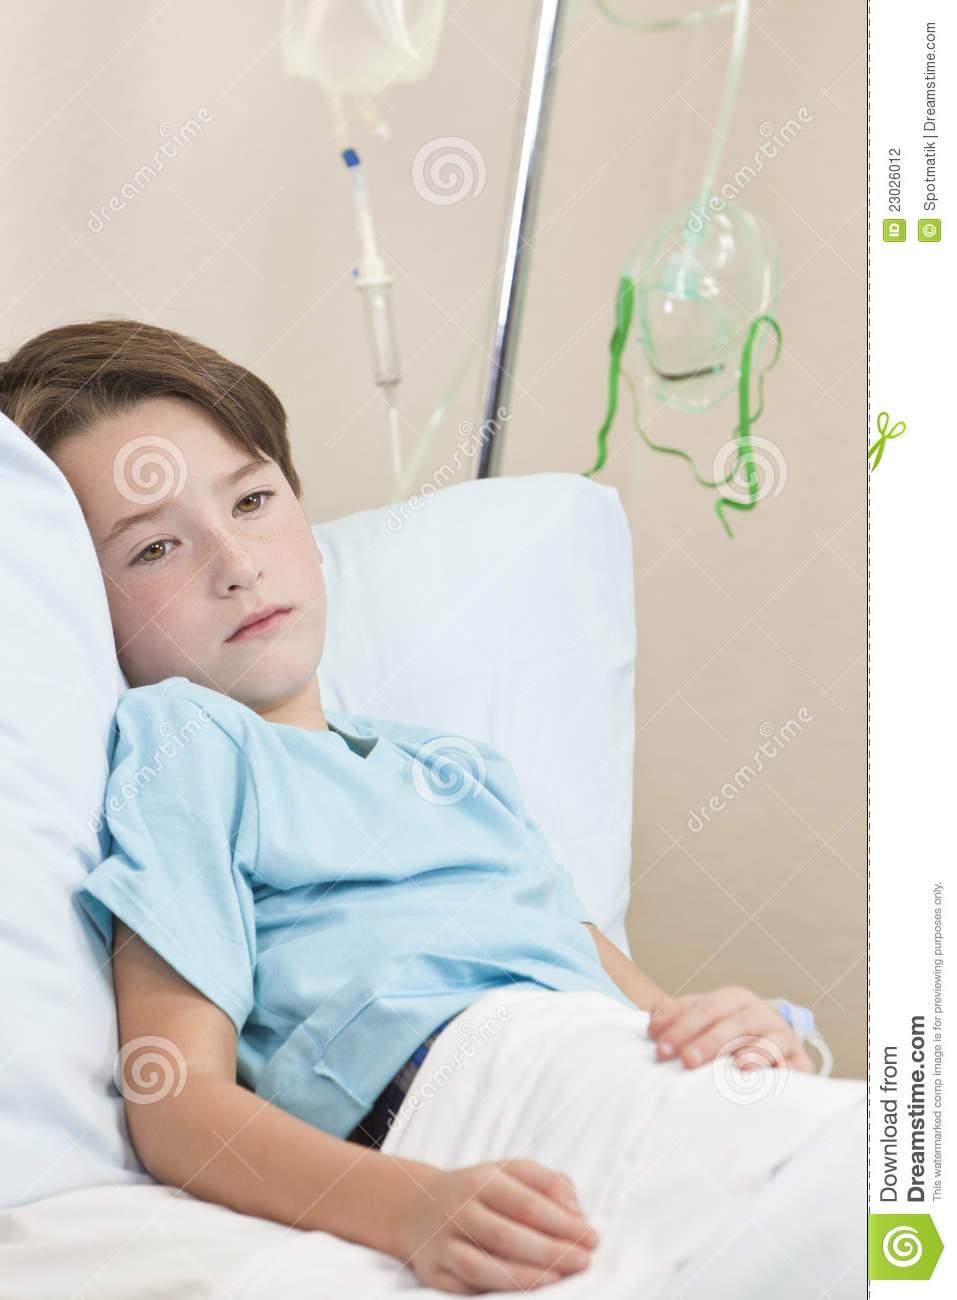 Young boy child patient in hospital bed stock photo image 23026012 - Bedjongen jaar ...